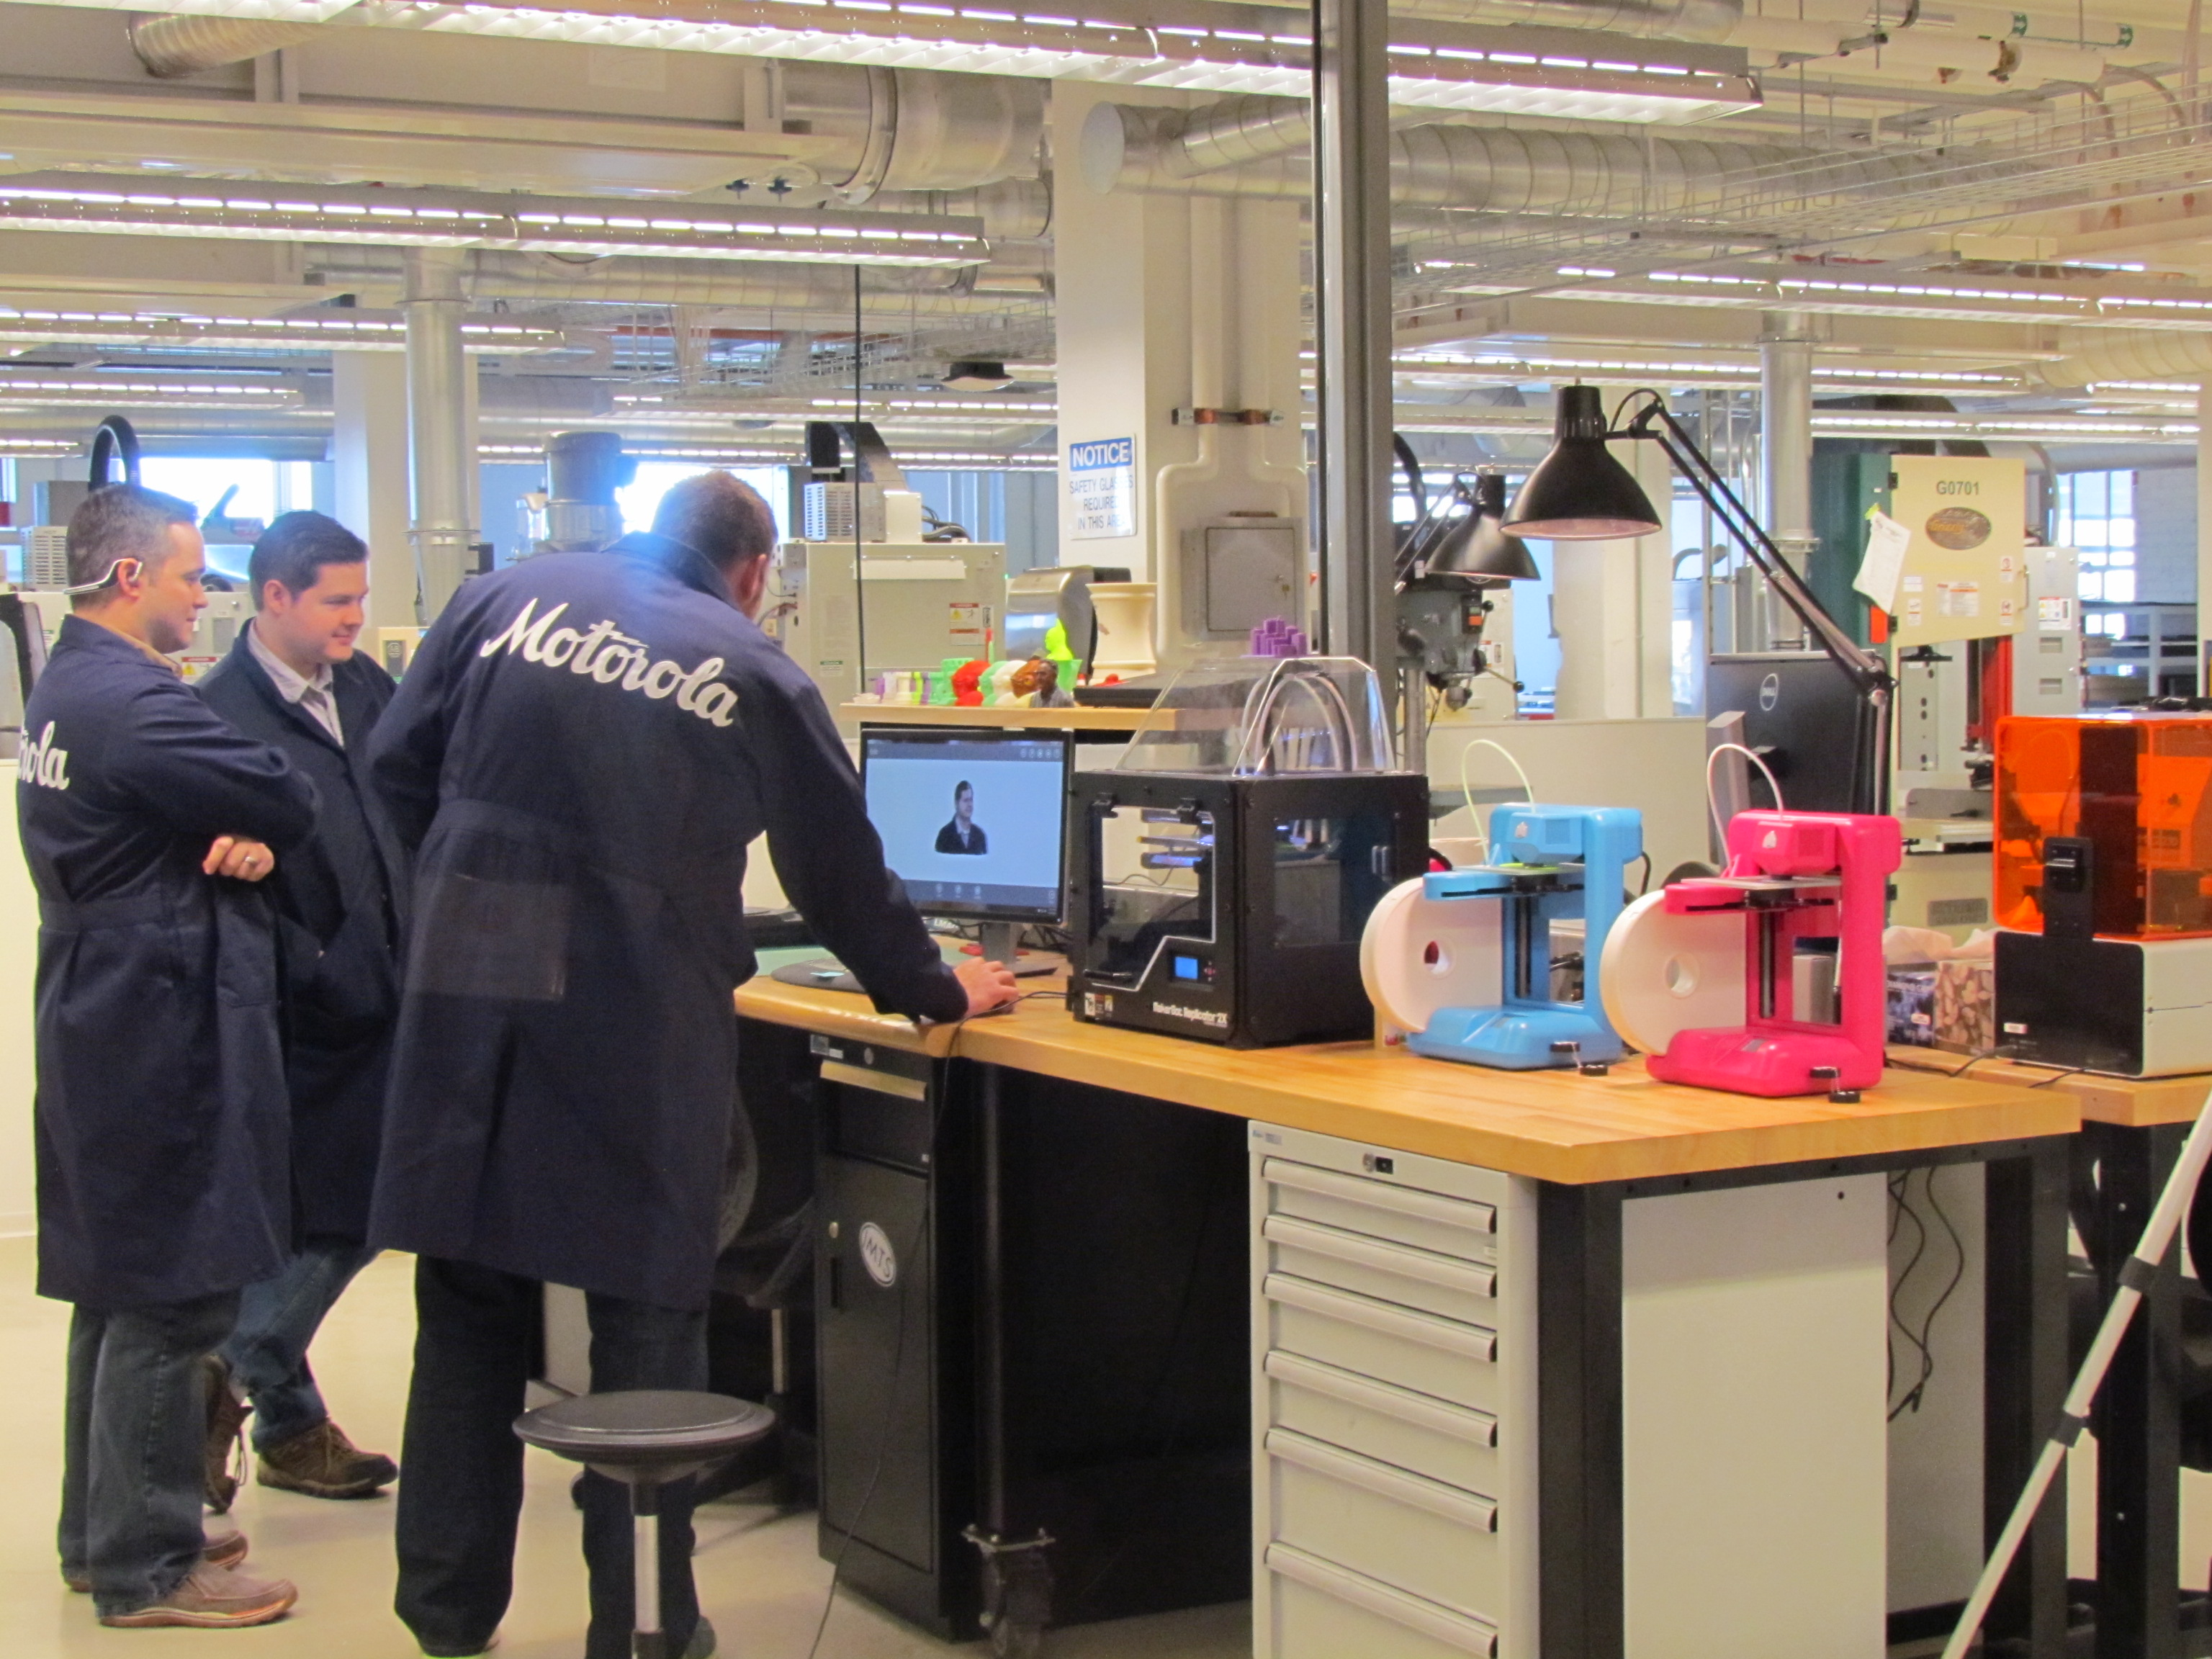 Machine shop complete with MakerBots